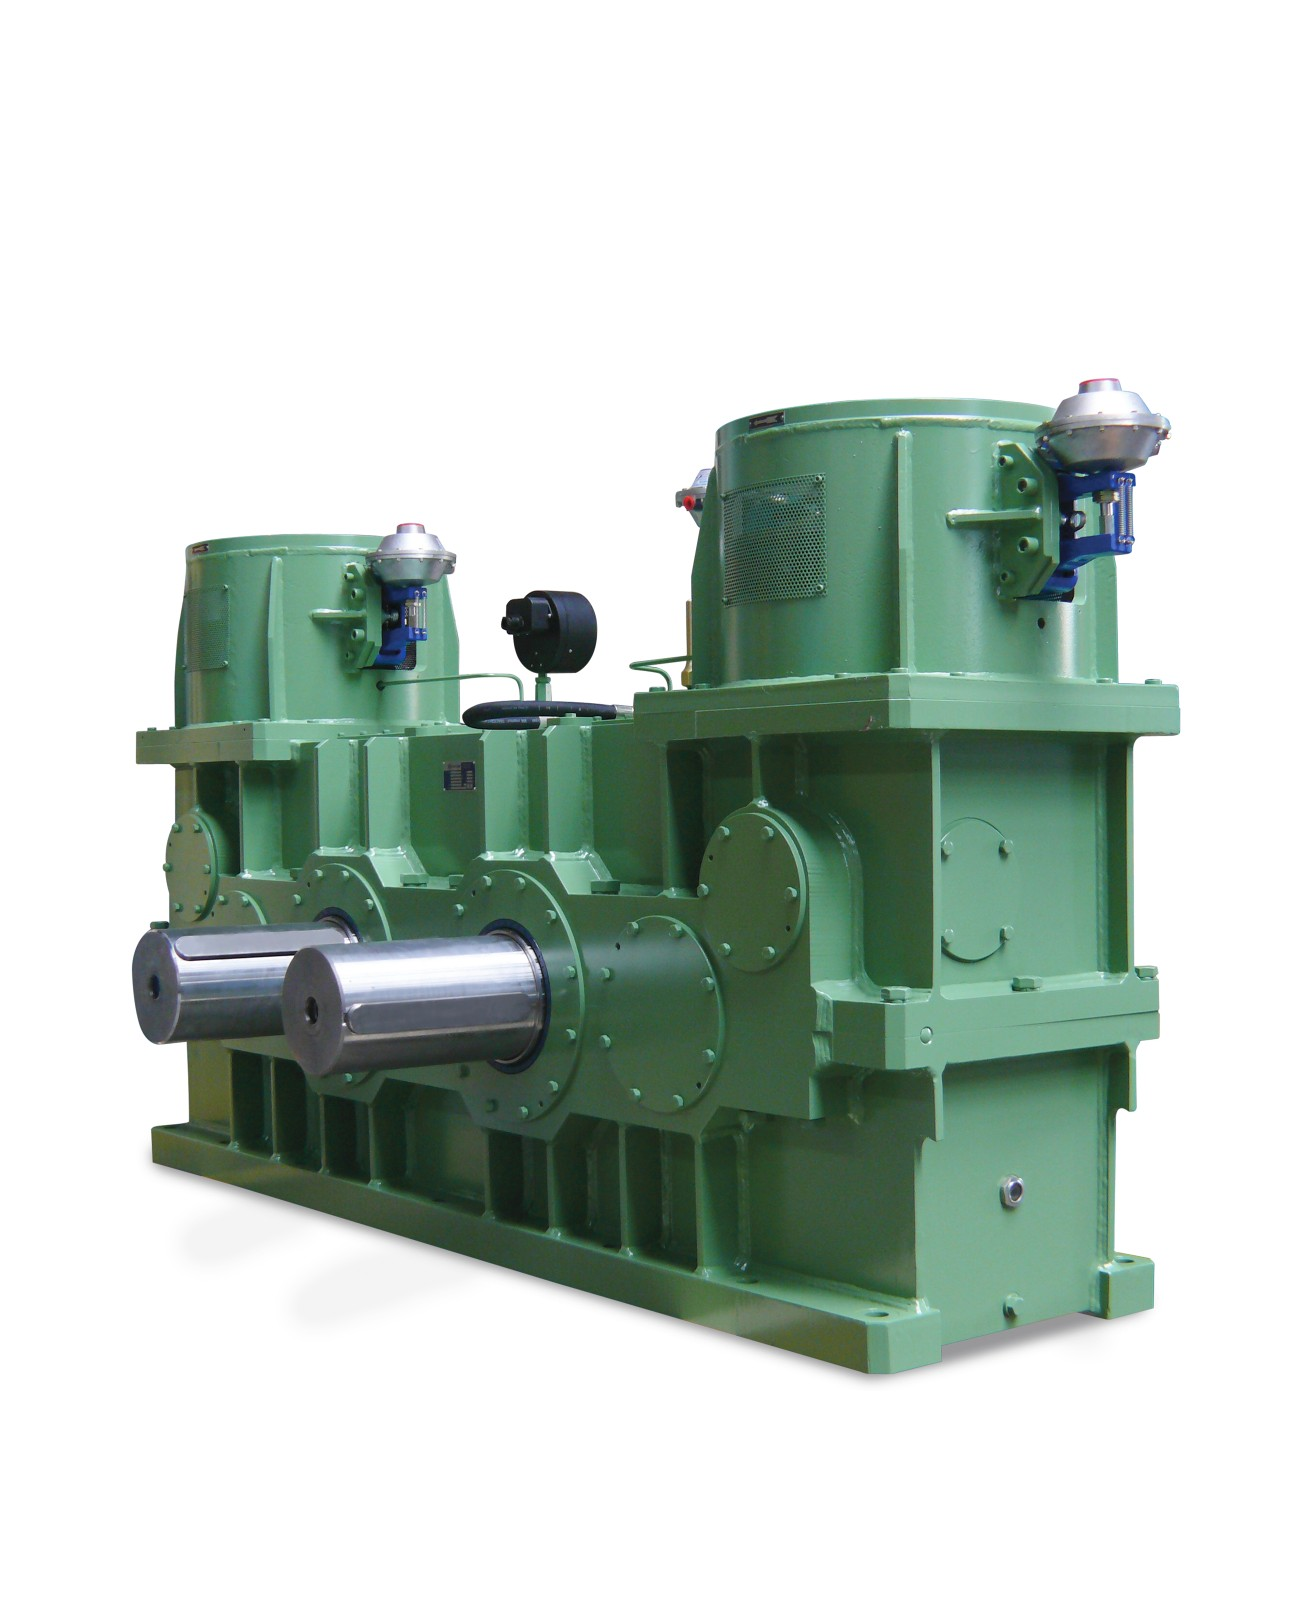 Helical or bevel-helical gearbox for two-roll mill - Wikov